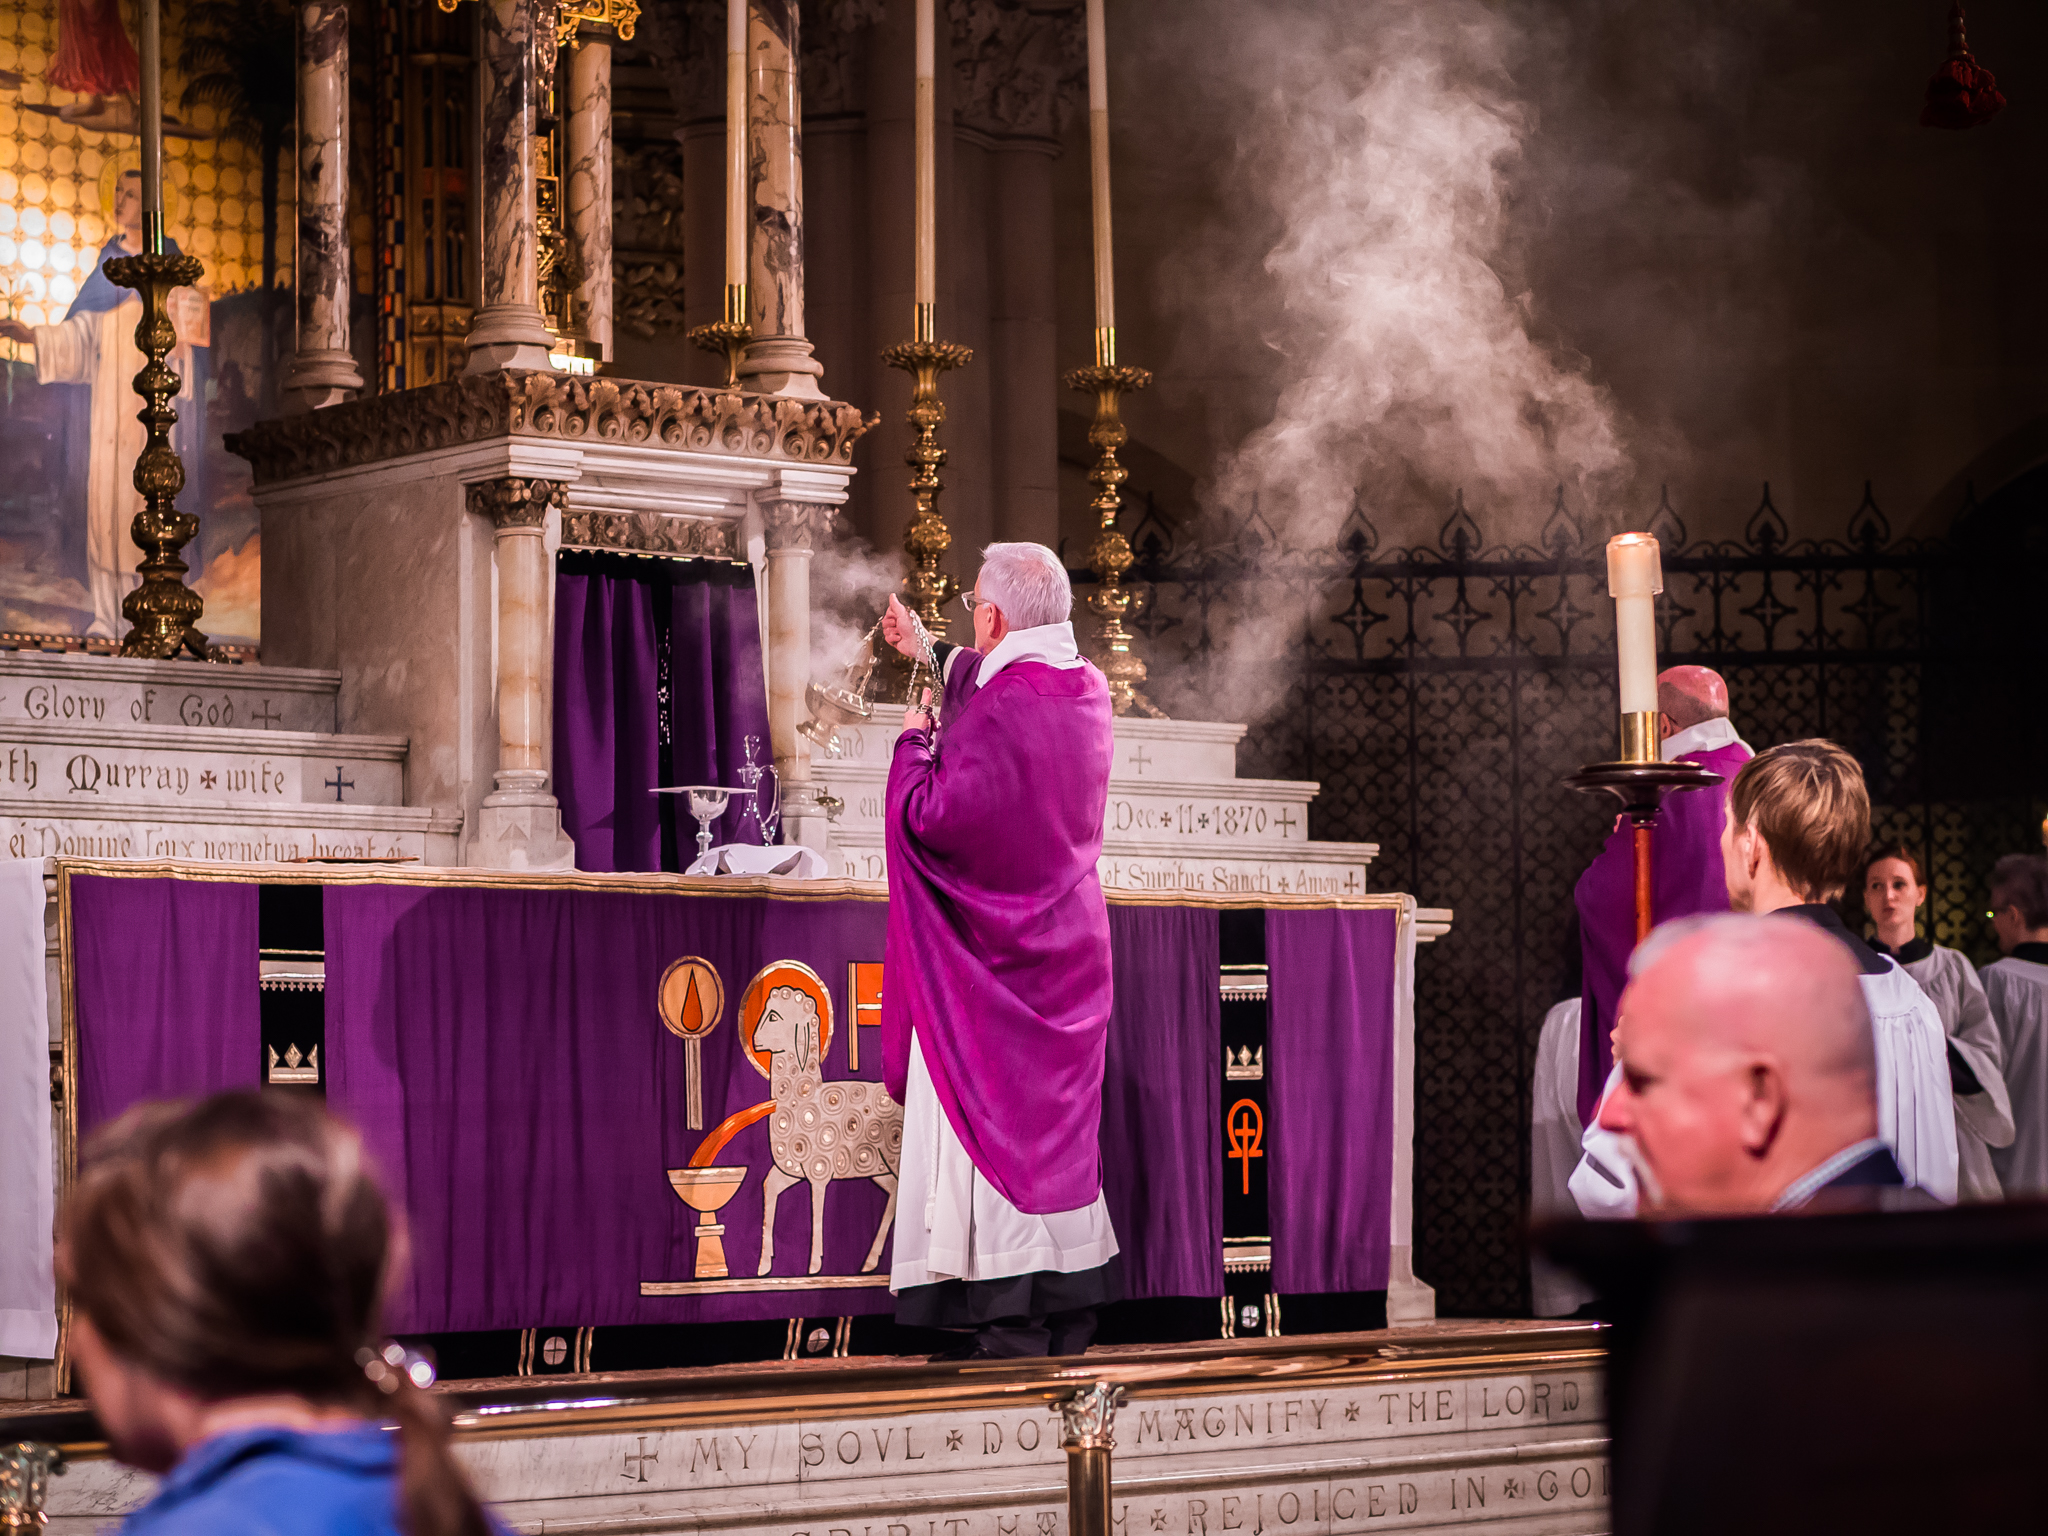 After the bread and wine are prepared, incense is offered to honor the offering and the altar.  Photo by Ricardo Gomez